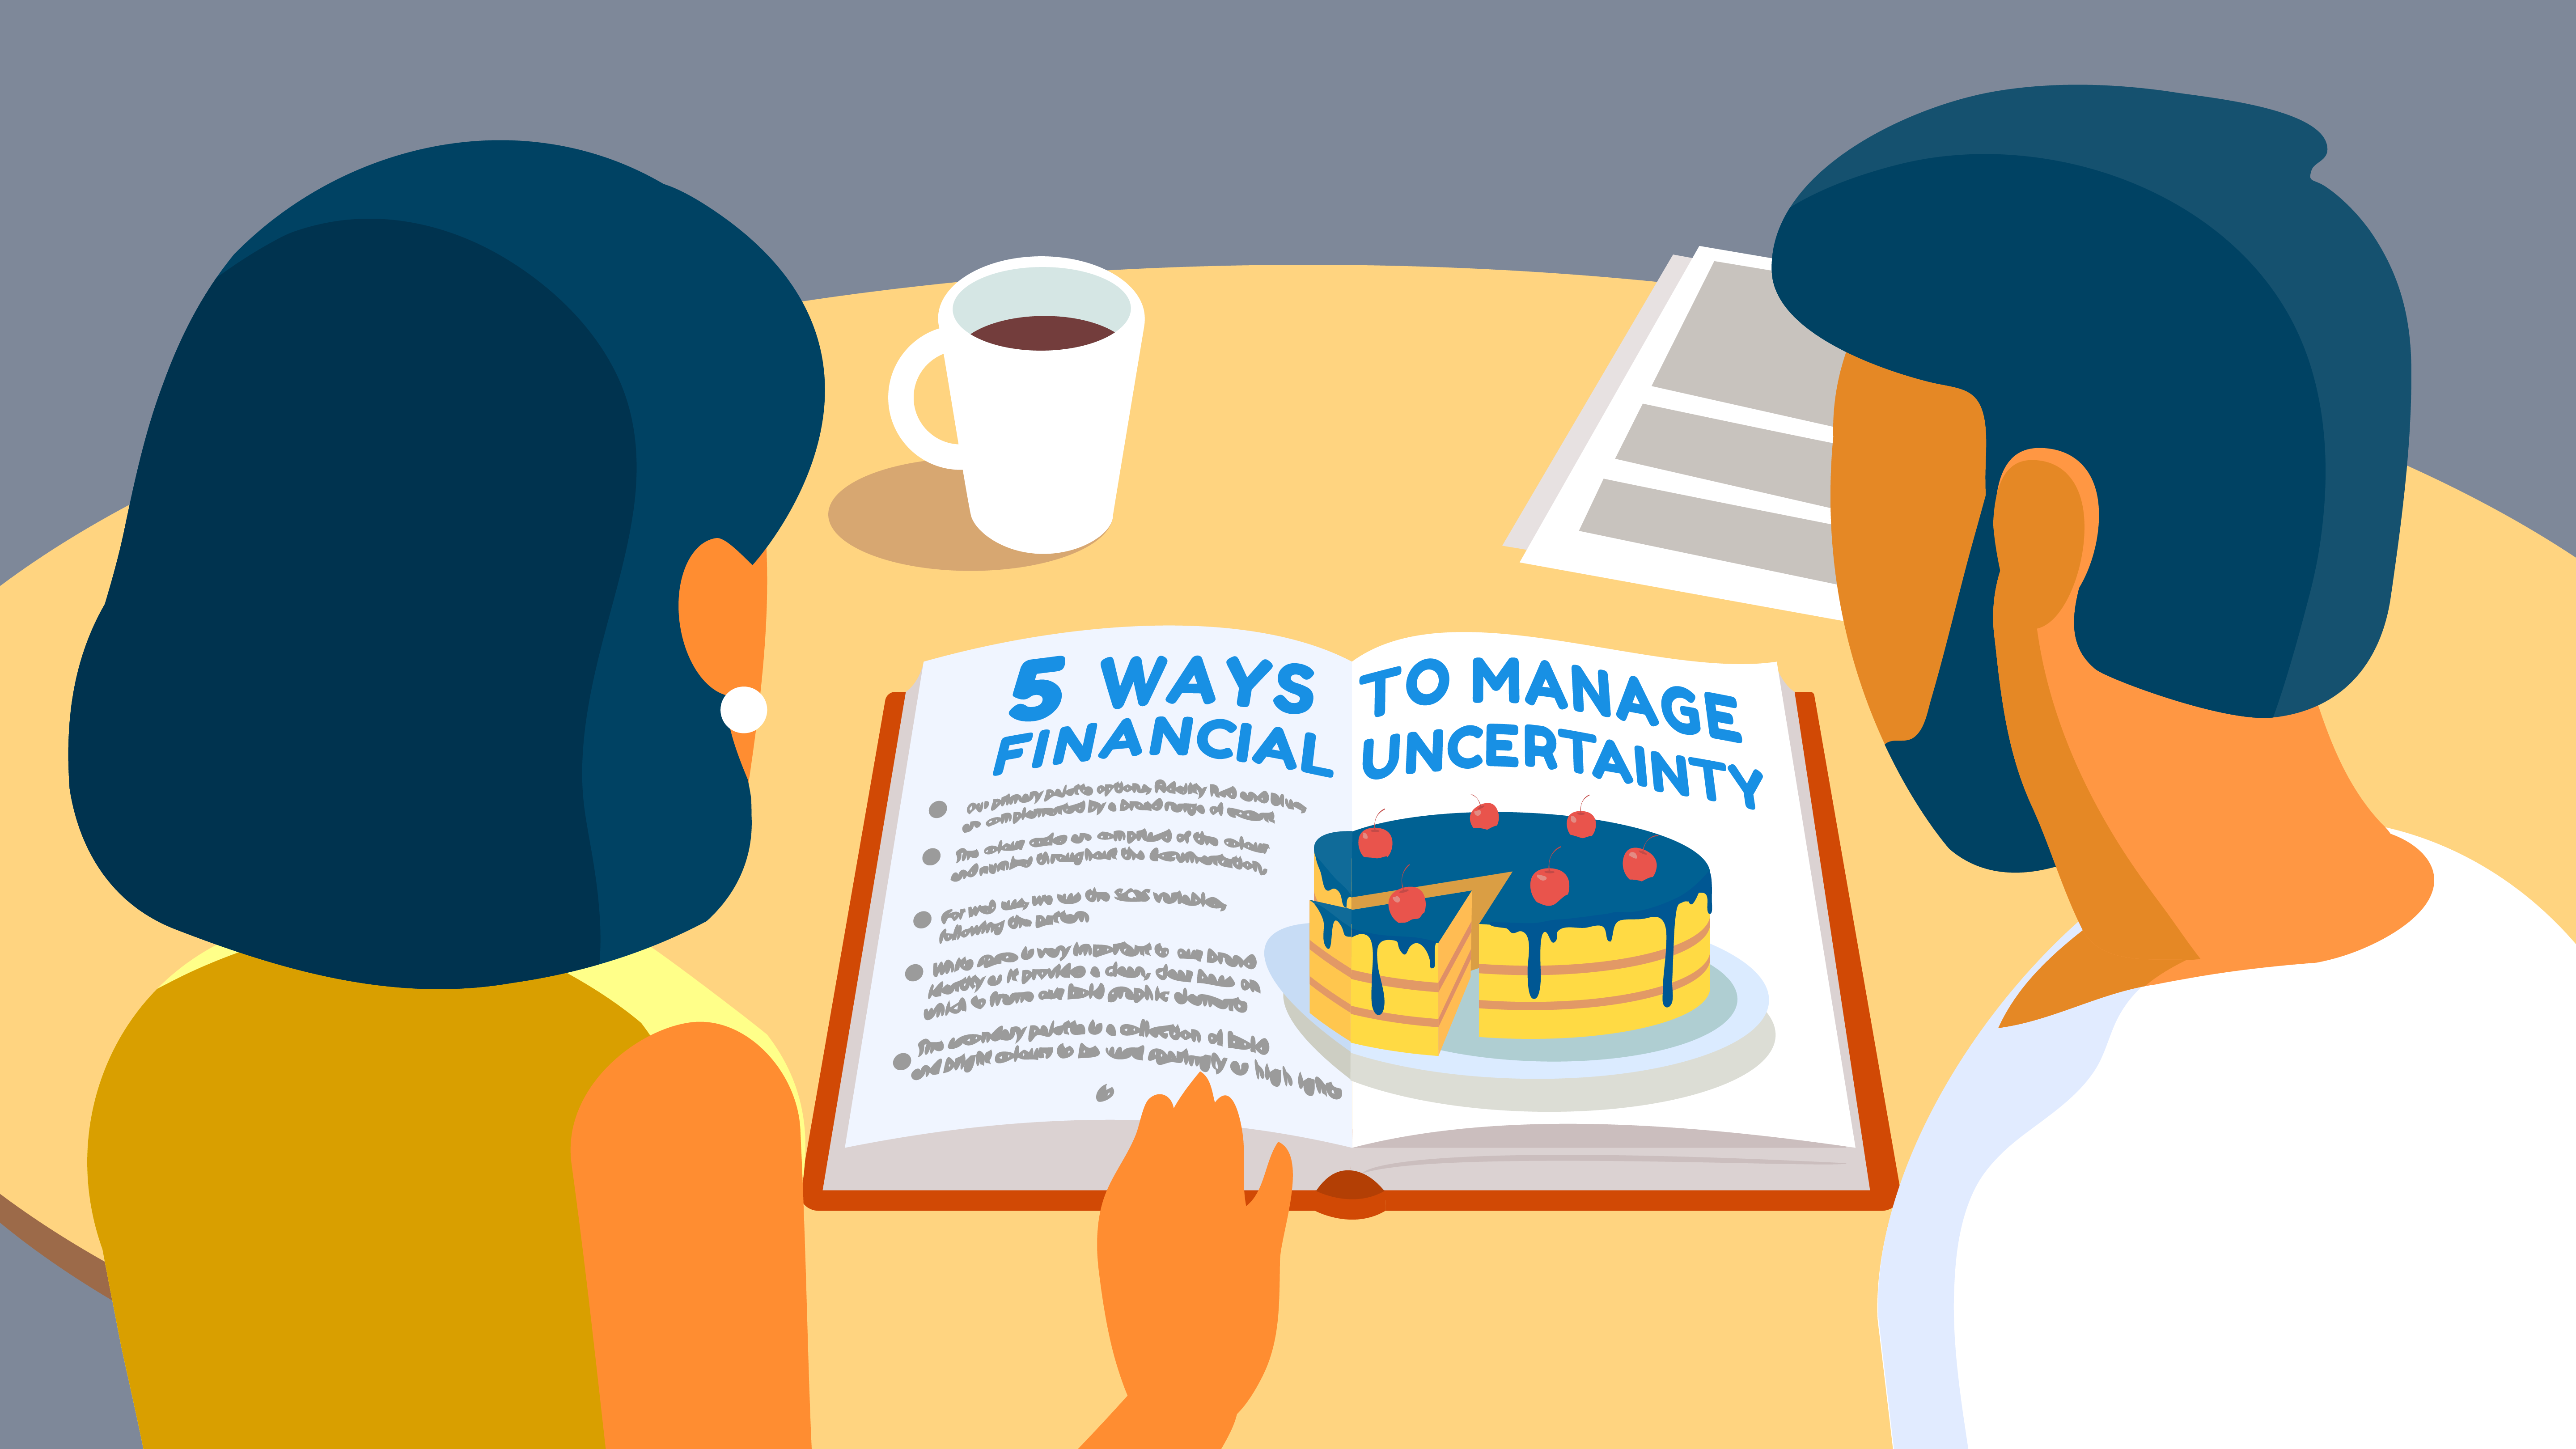 5 ways to manage financial uncertainty - Explainer Video